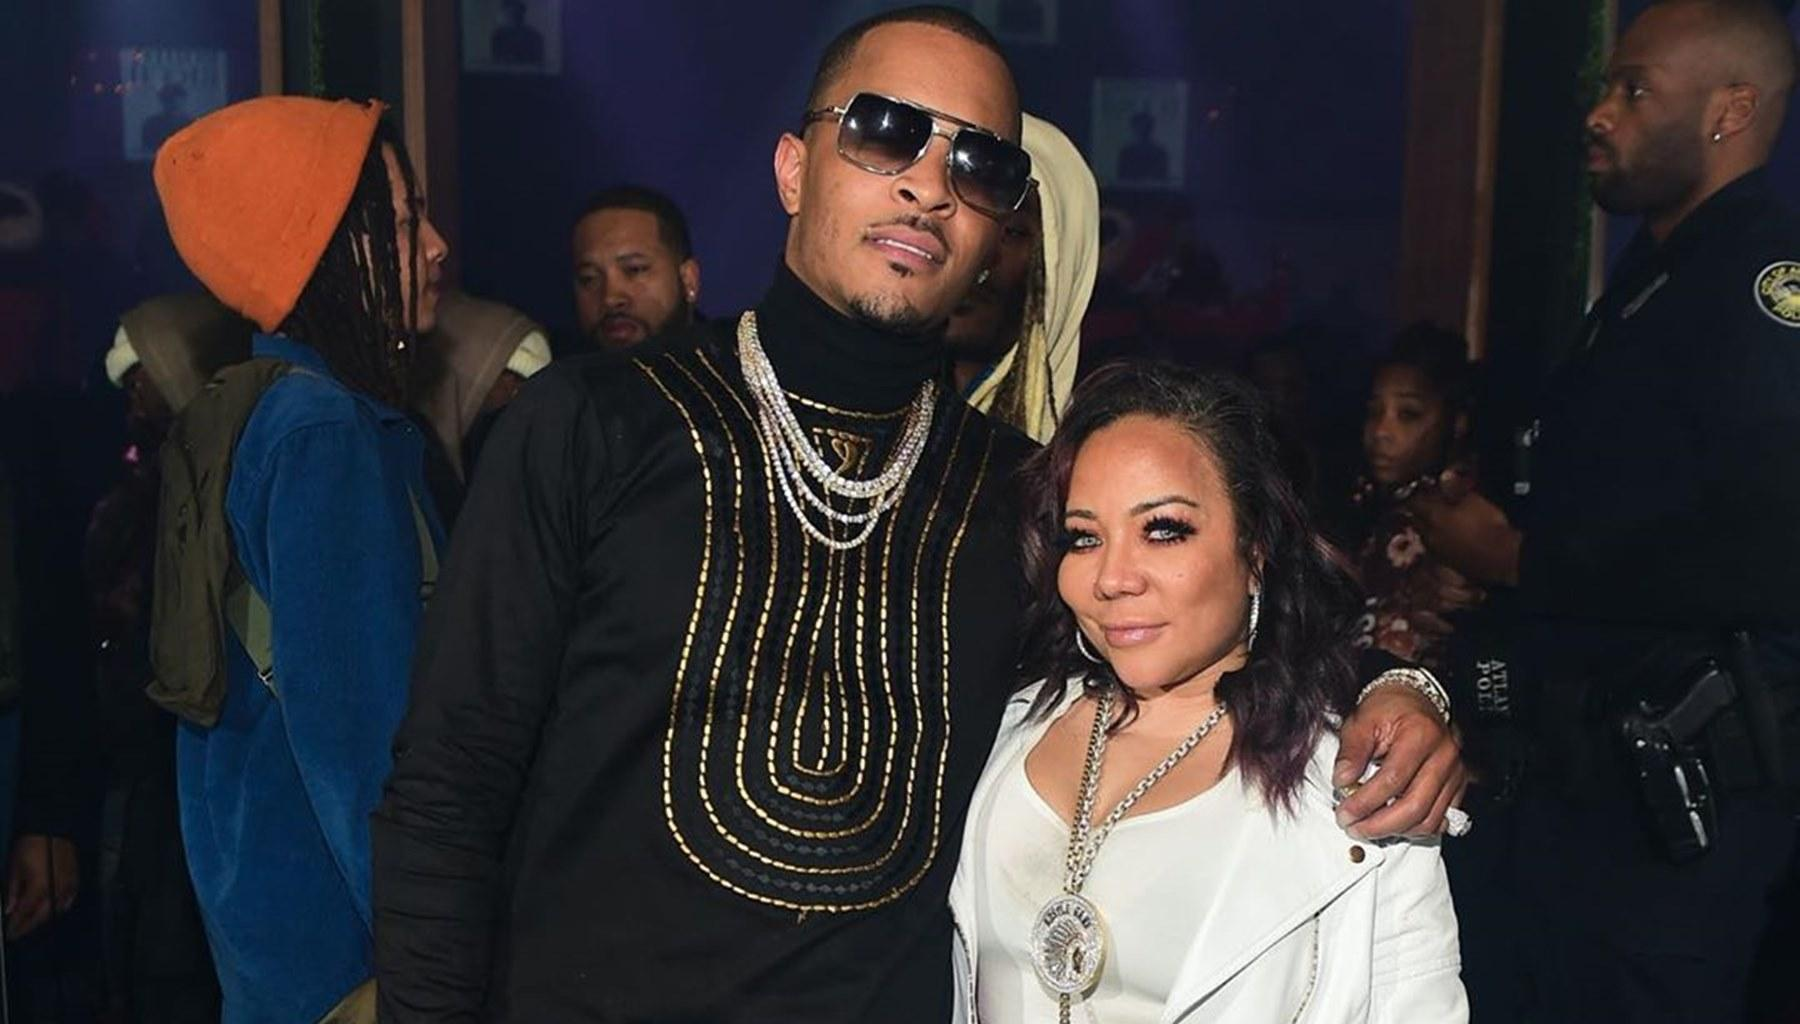 Tiny Harris Supports Her 'Big Daddy' T.I. Following This Achievement - See Her Photo